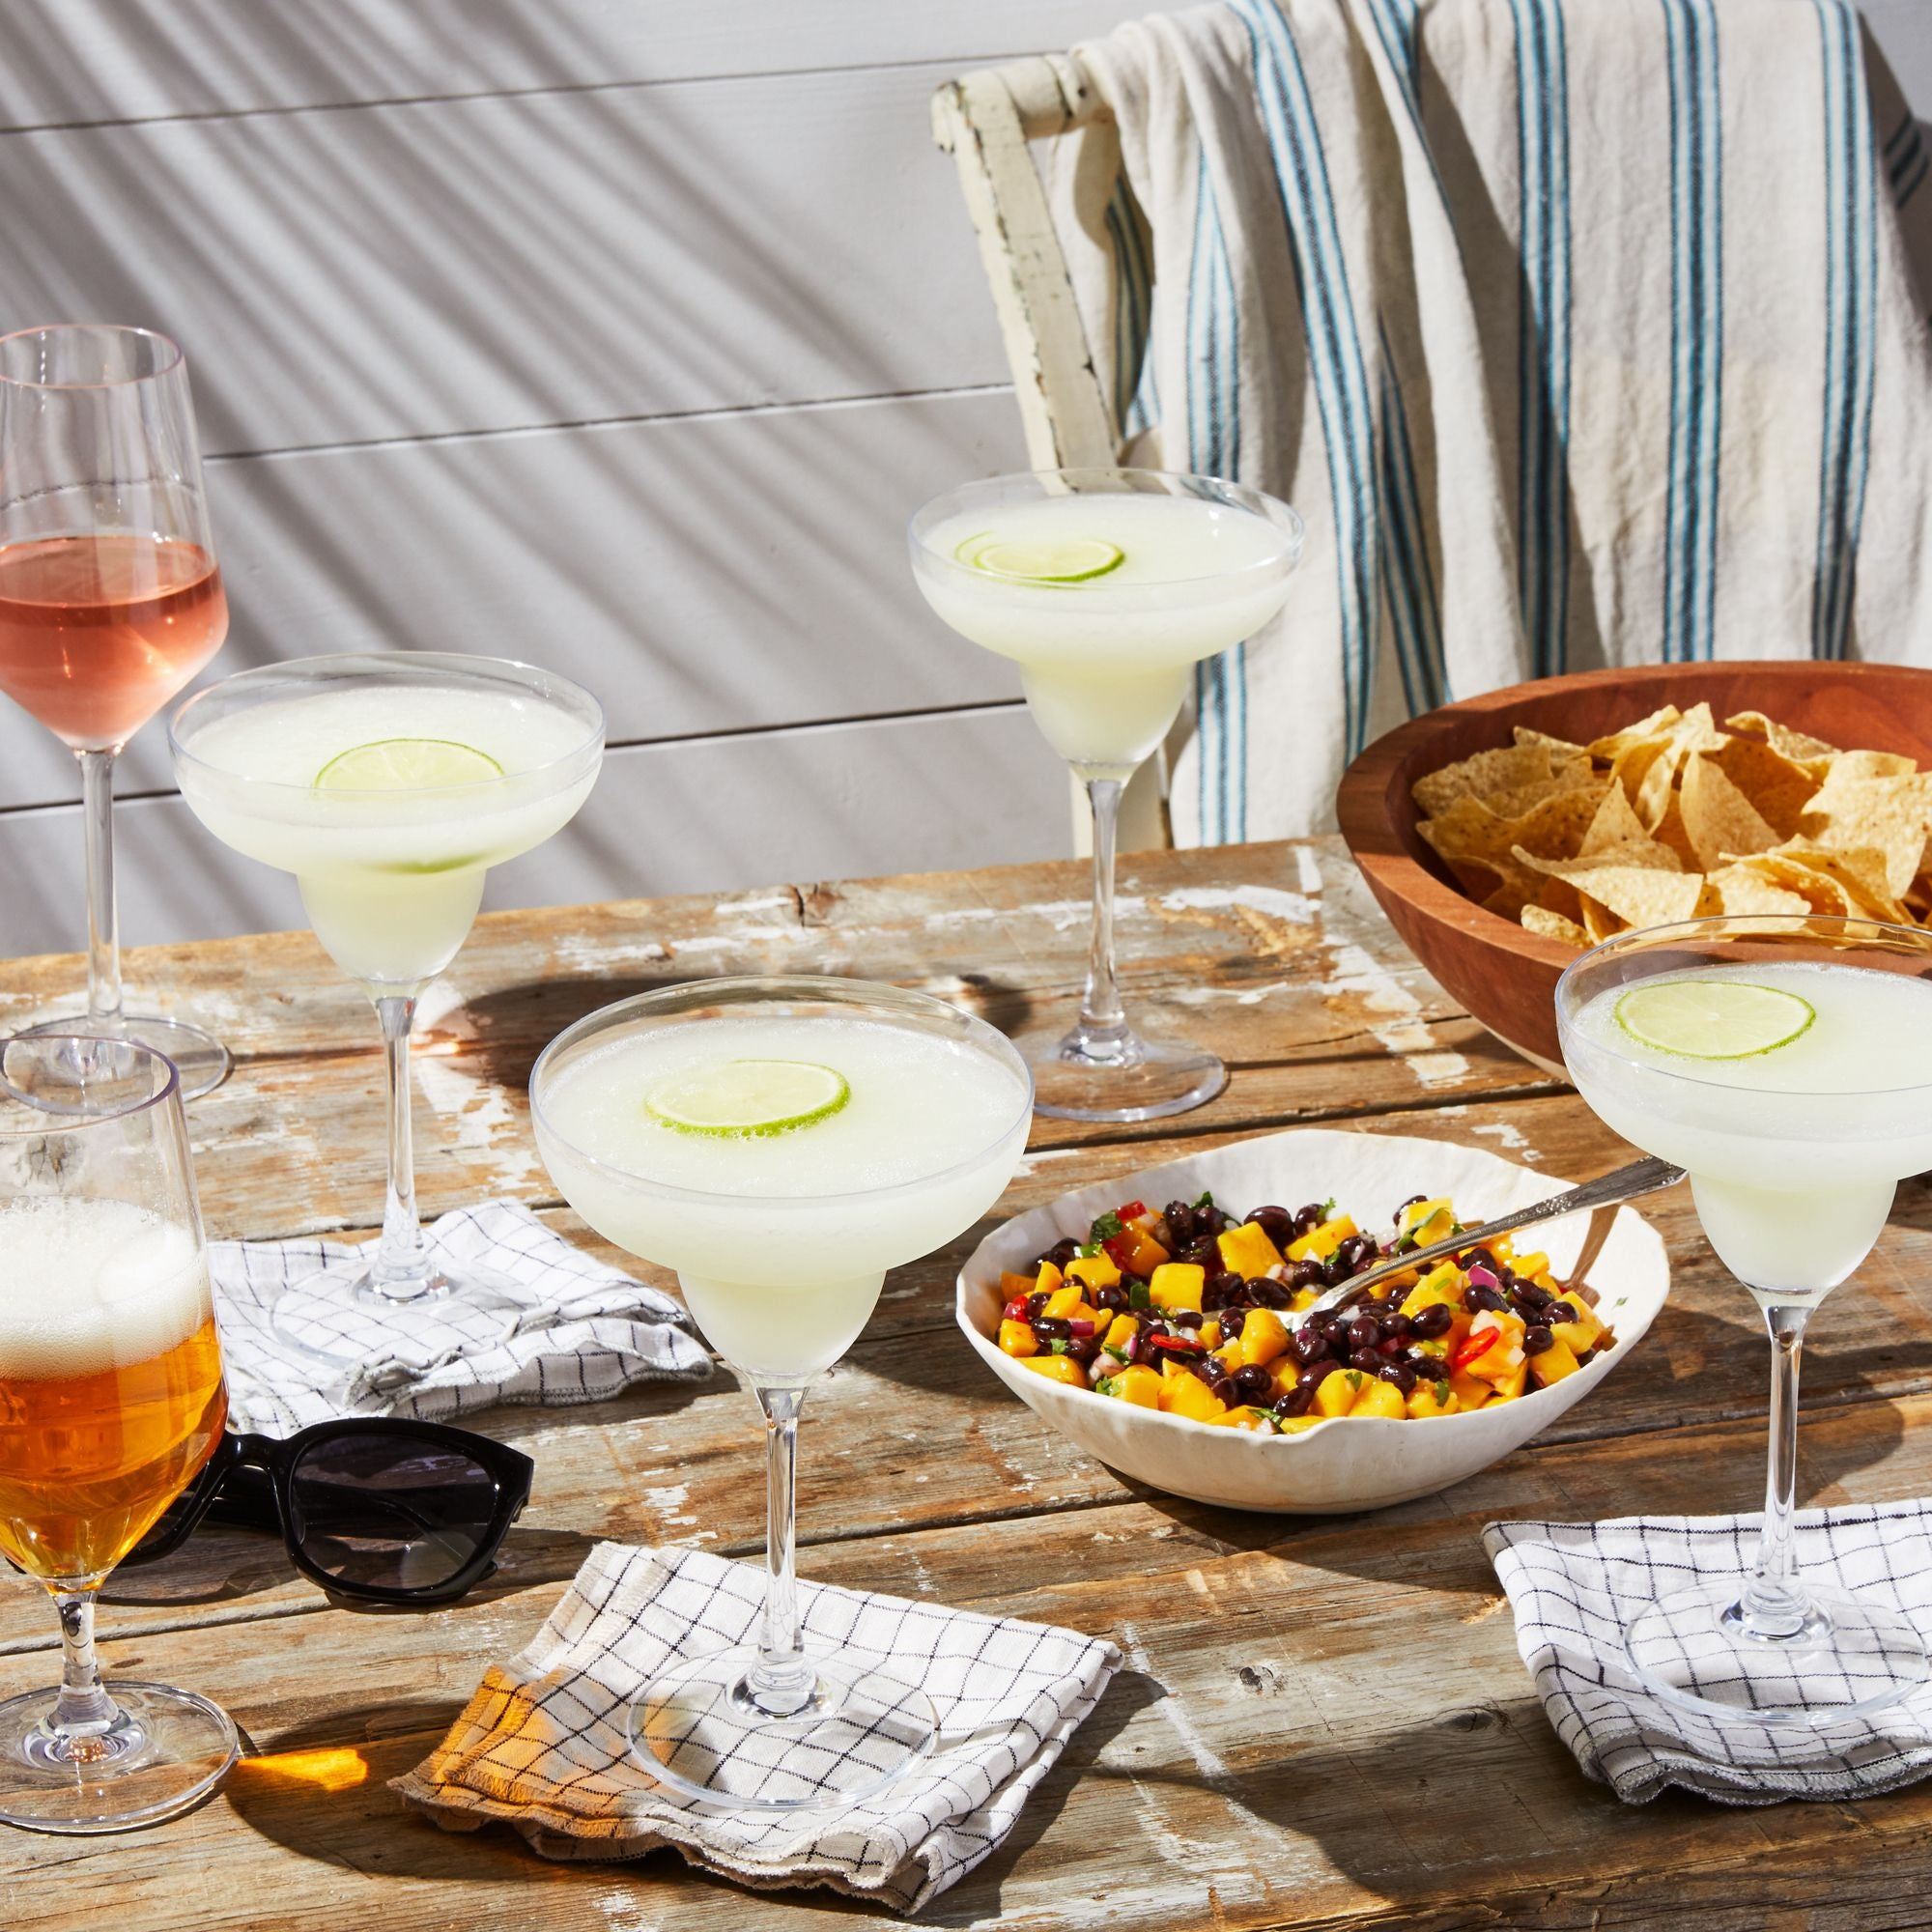 The Best Plastic Wine Glasses For Stress-Free Sipping